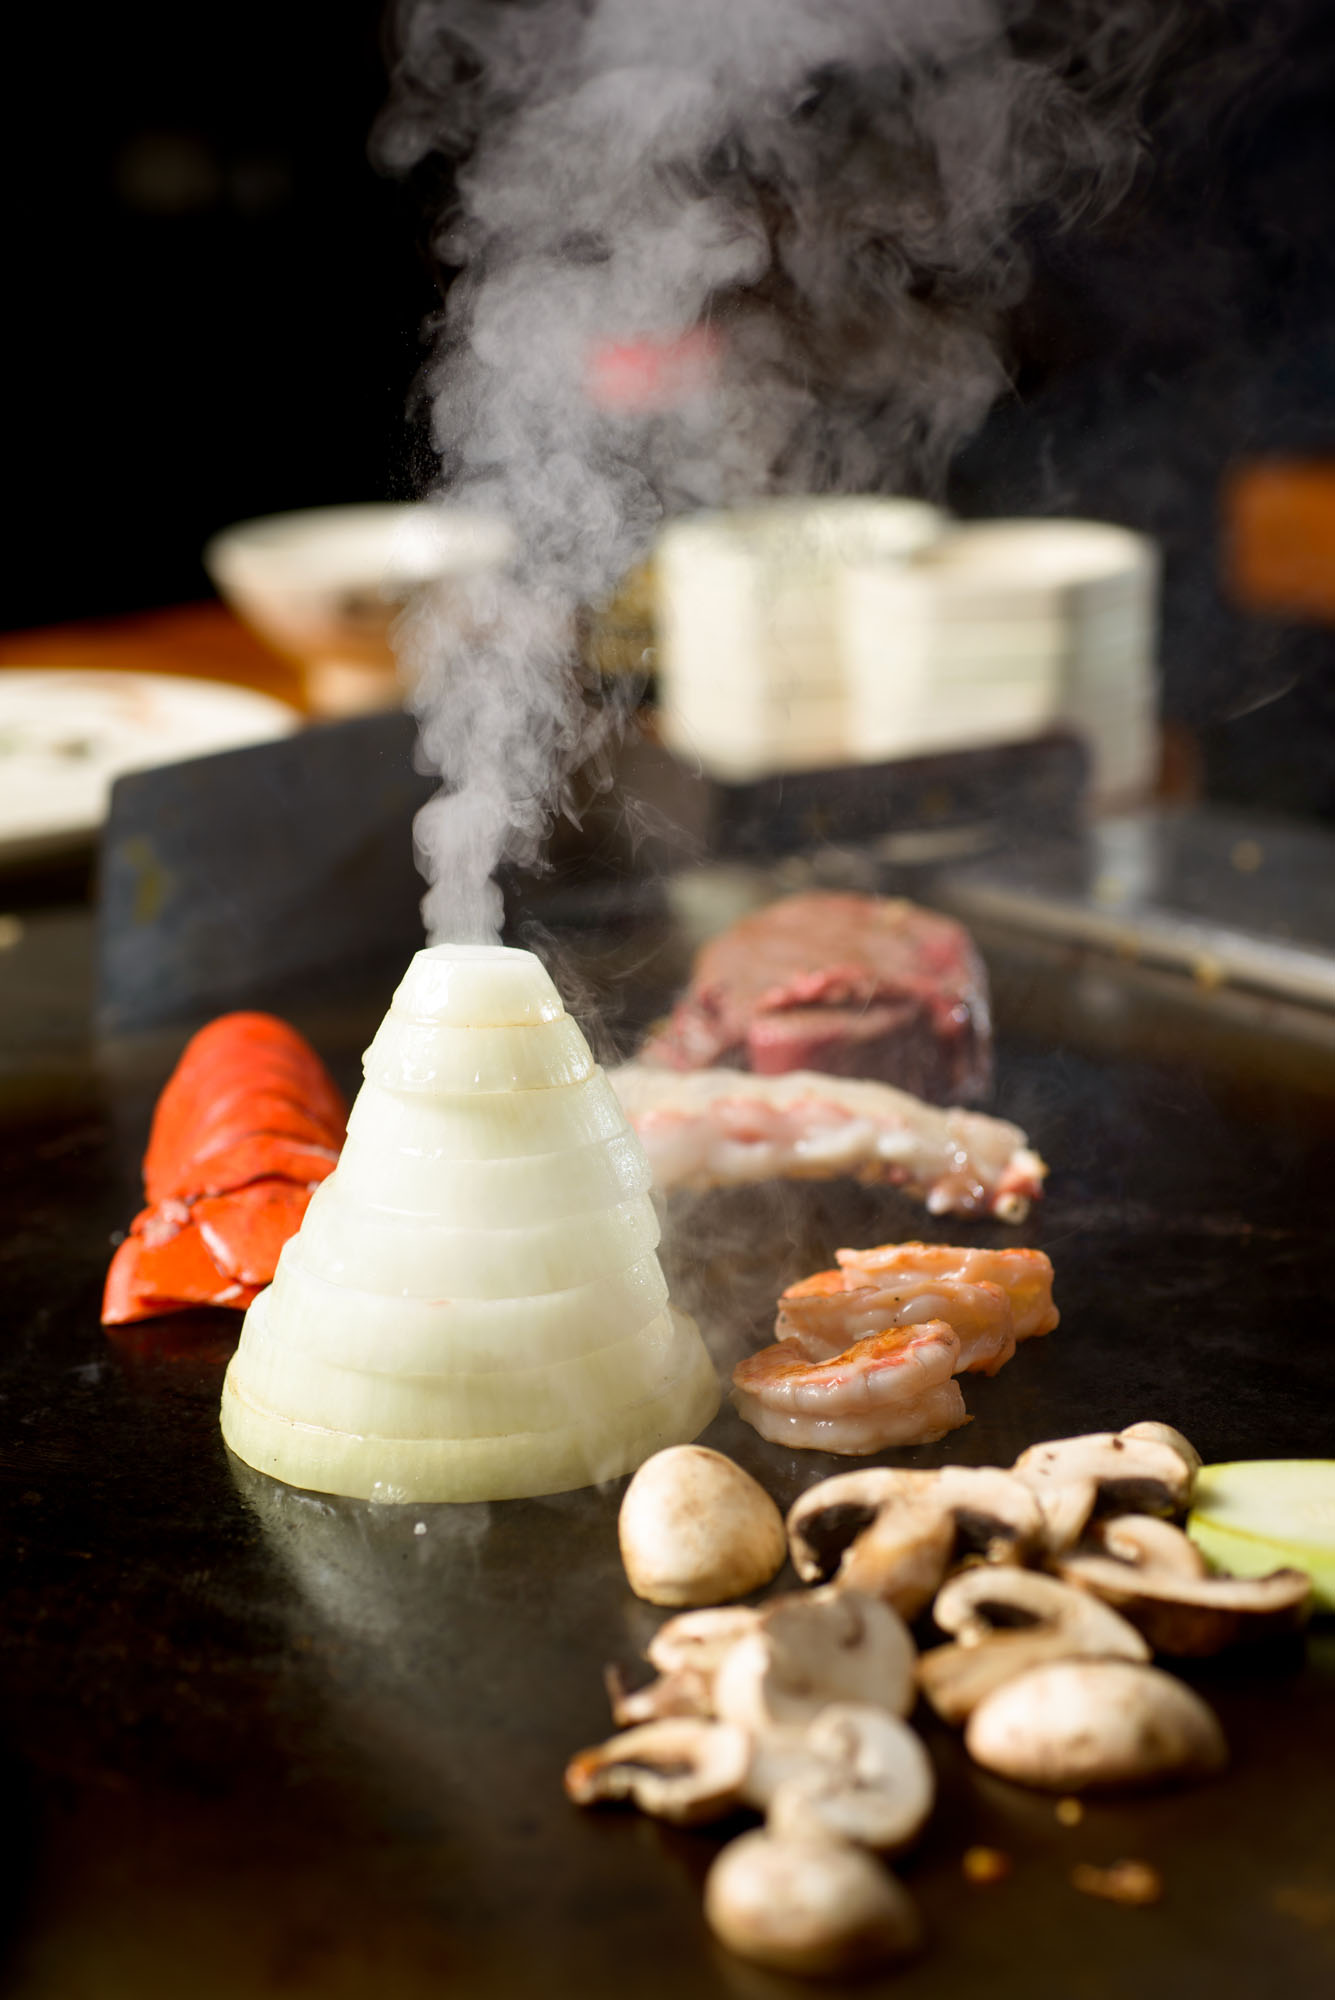 8806_d800b_Kyoto_Palace_Restaurant_Campbell_Food_and_Drink_Photography.jpg